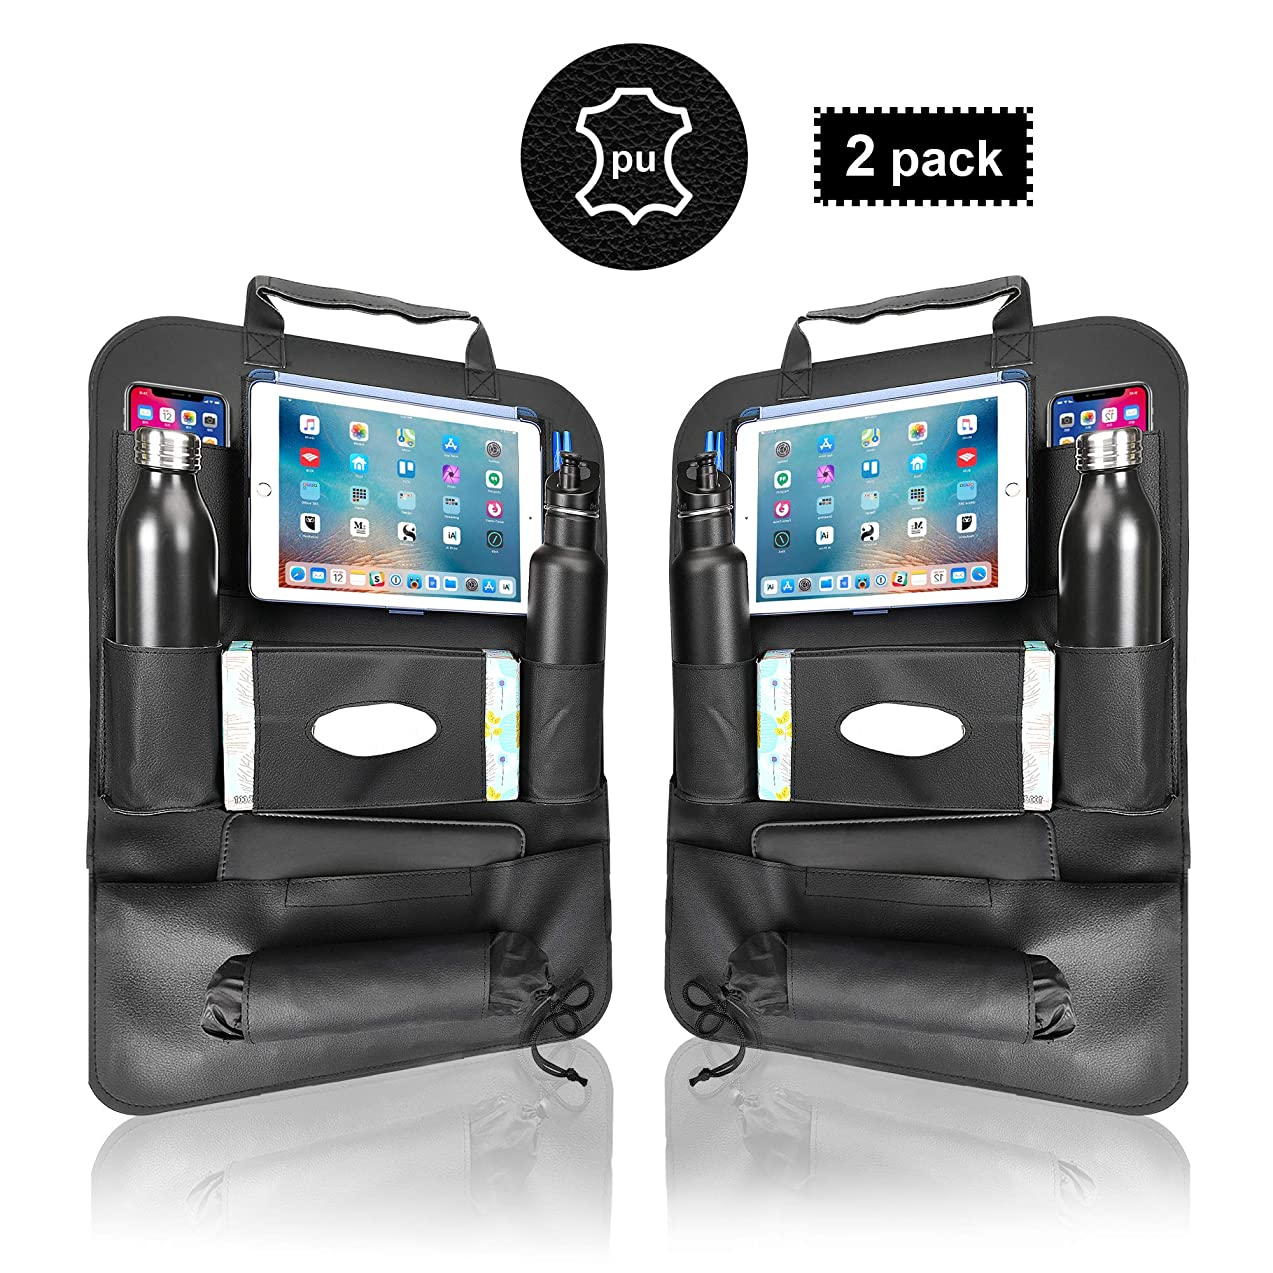 ZODDOS Car Backseat Organizer and Bag Holder with 8 Pockets for Ipads and Tablets. Premium Waterproof PU Leather Road Trip Essentials, Black Pack of 2